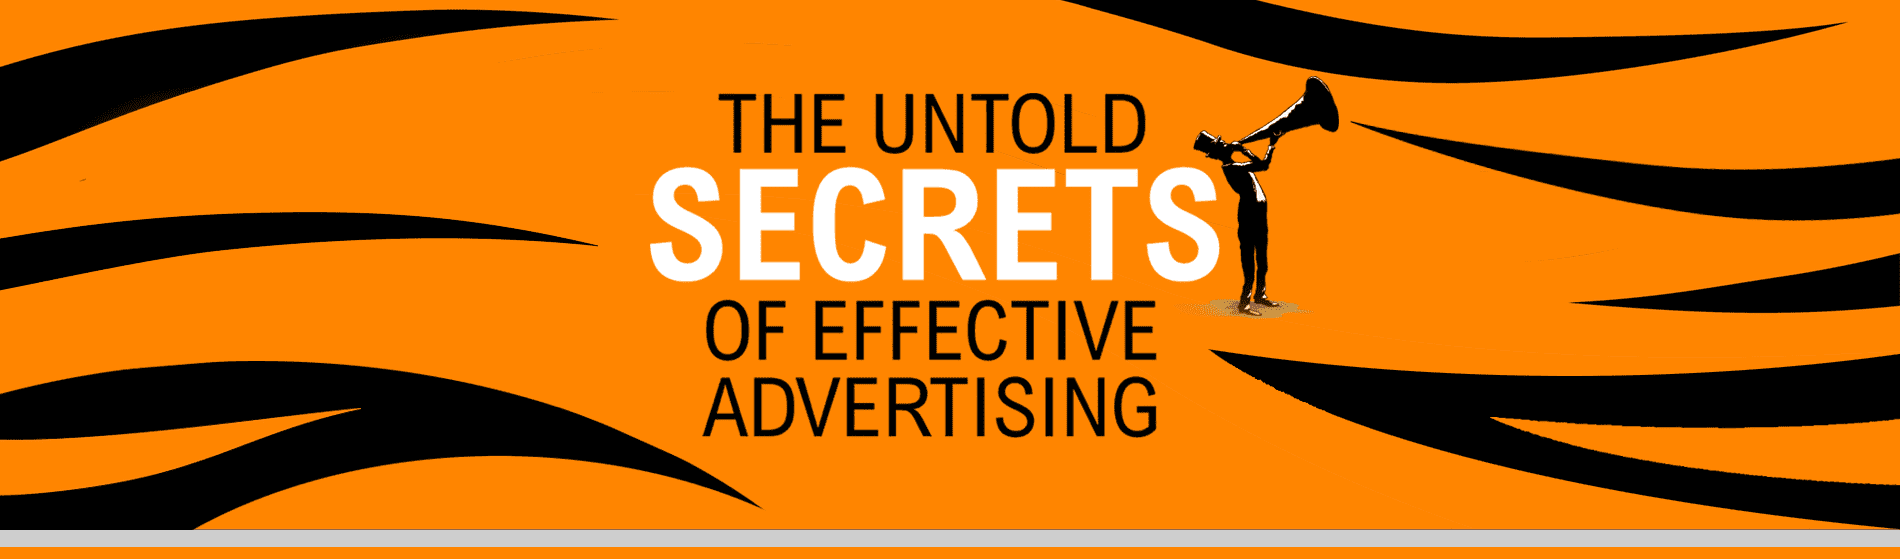 The Untold Secrets of Effective Advertising